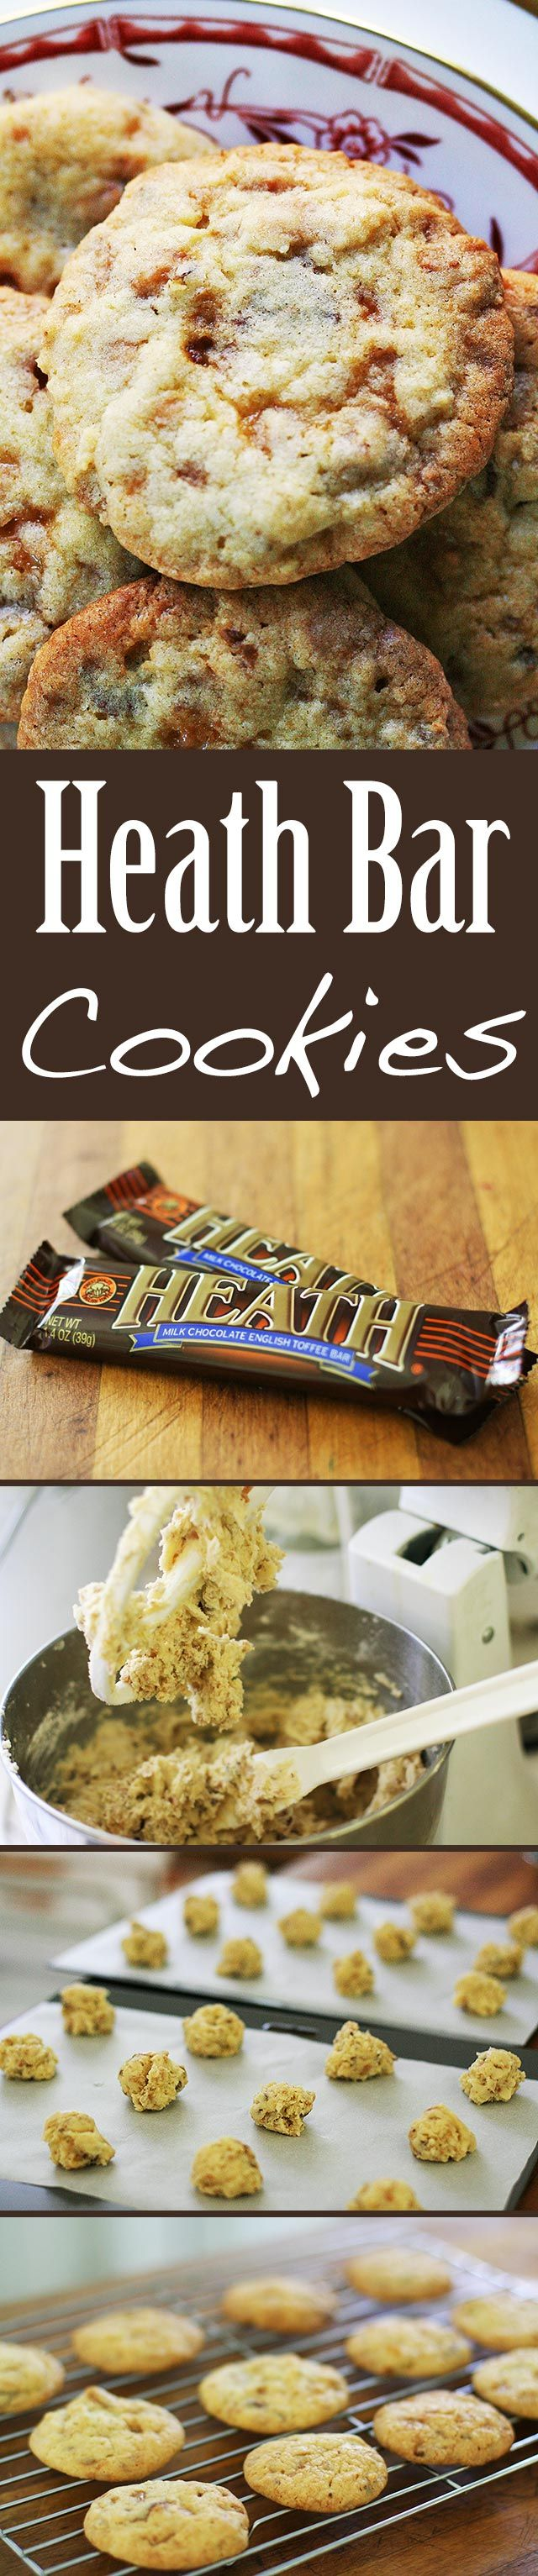 Heath Bar Cookies ~ Irresistible Heath bar cookies recipe, made with chunks of Heath toffee bars. ~ SimplyRecipes.com